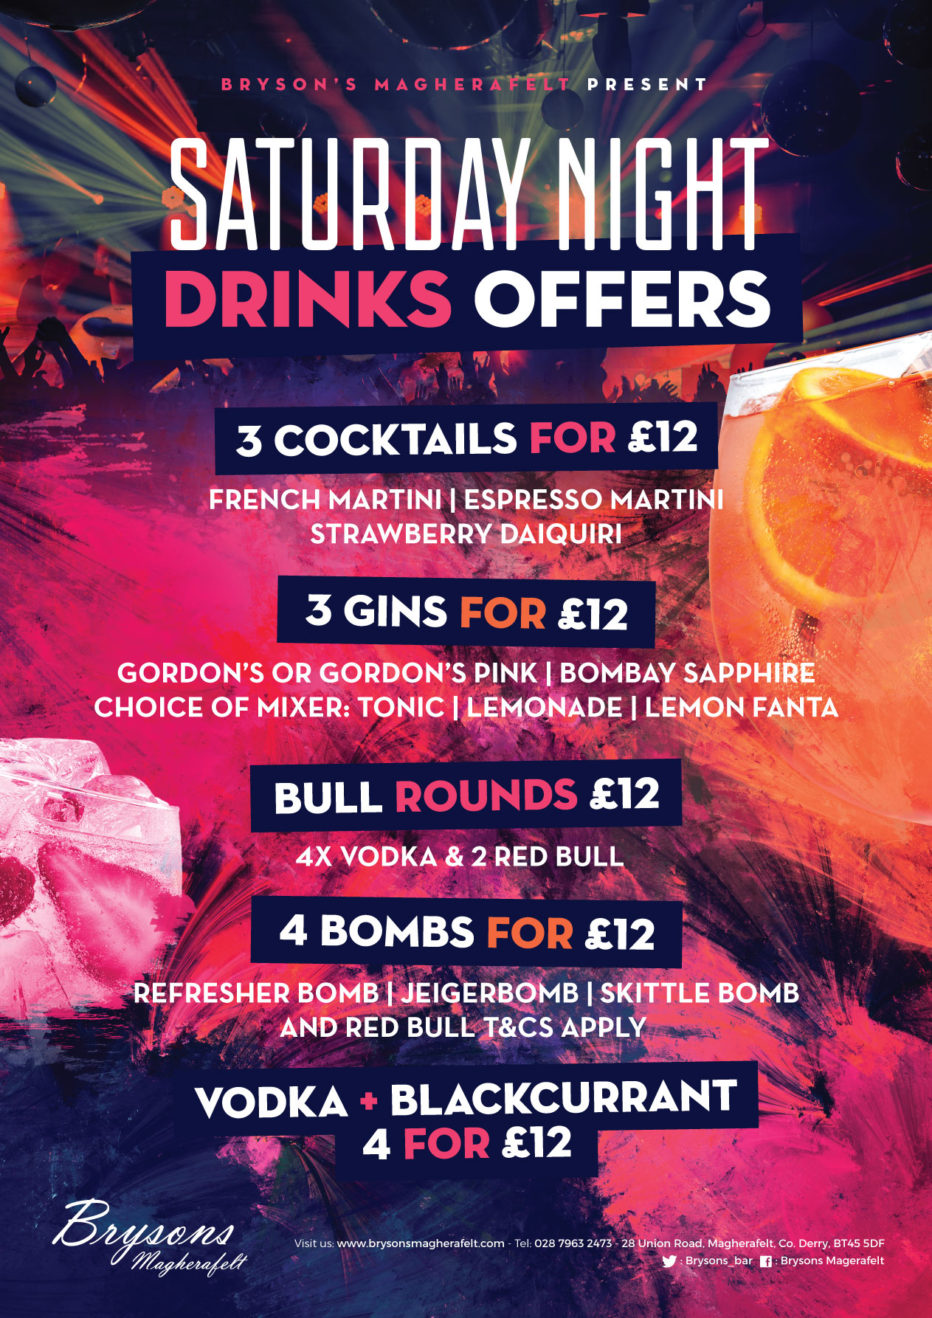 NEW Saturday night drinks offers